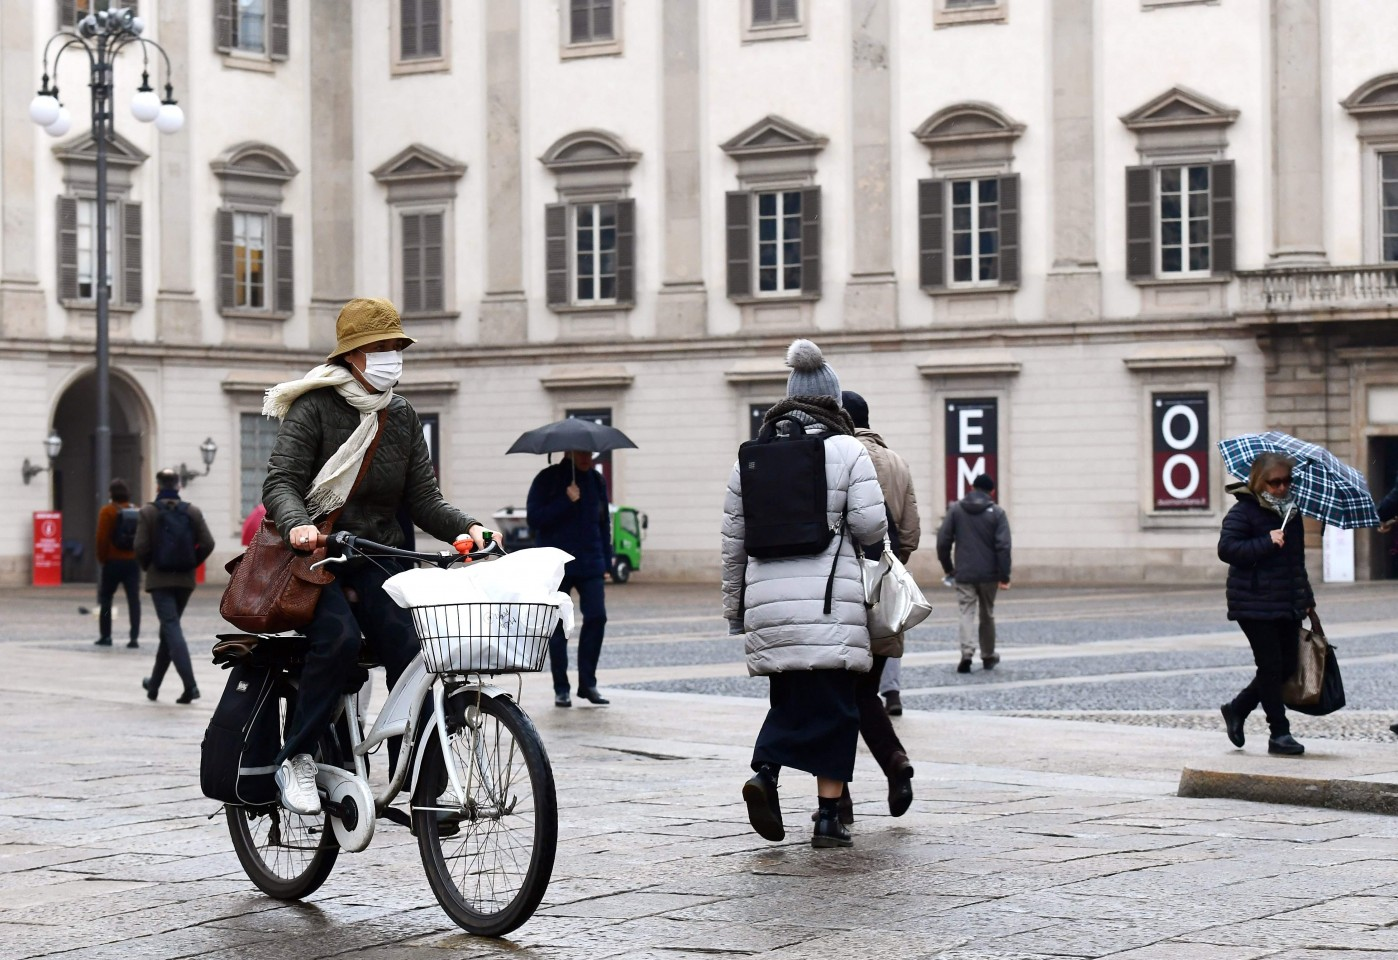 Difficulties in the mainland no longer stay within China as the Covid-19 epidemic sweeps the world. In this photo taken on 2 March 2020, a woman wearing a protective mask is seen crossing Piazza Duomo with her bicycle in Milan. (Miguel Medina/AFP)